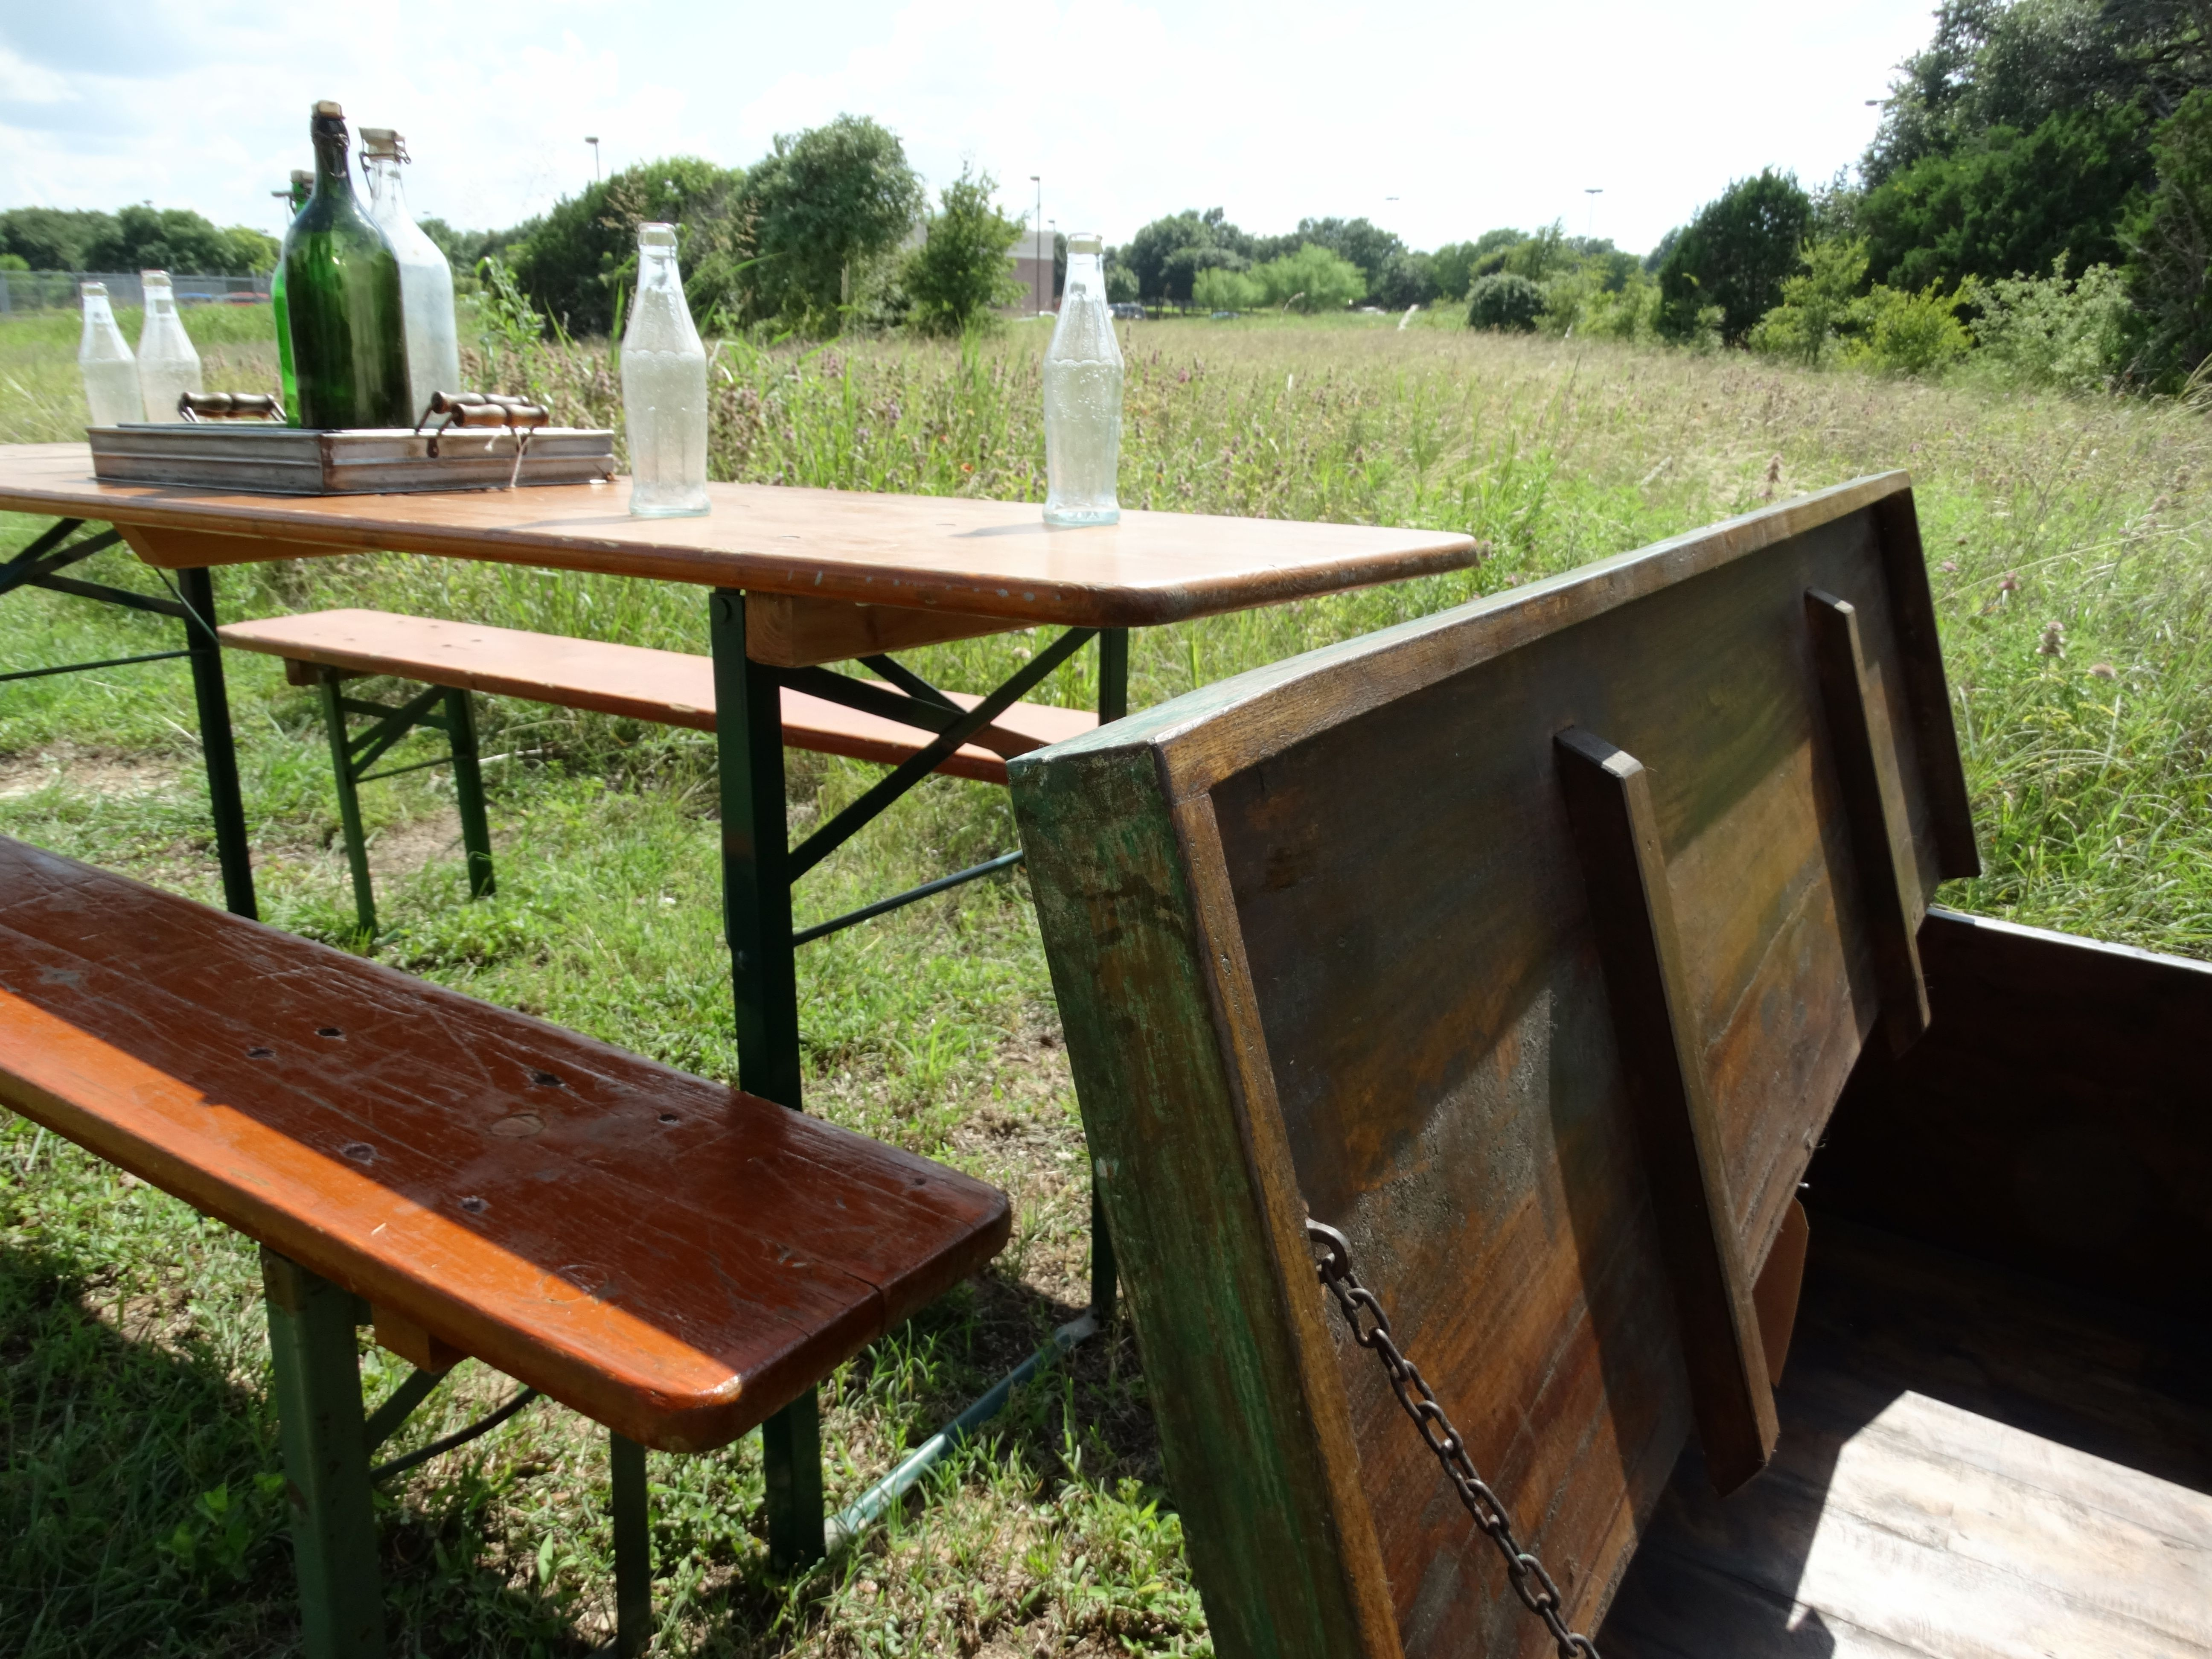 This Beer Garden Table Was Made From Spruce In The 1980s In The Stuttgart Area Of Southwest Germany Although These Lo Upscale Furniture Furniture Garden Table